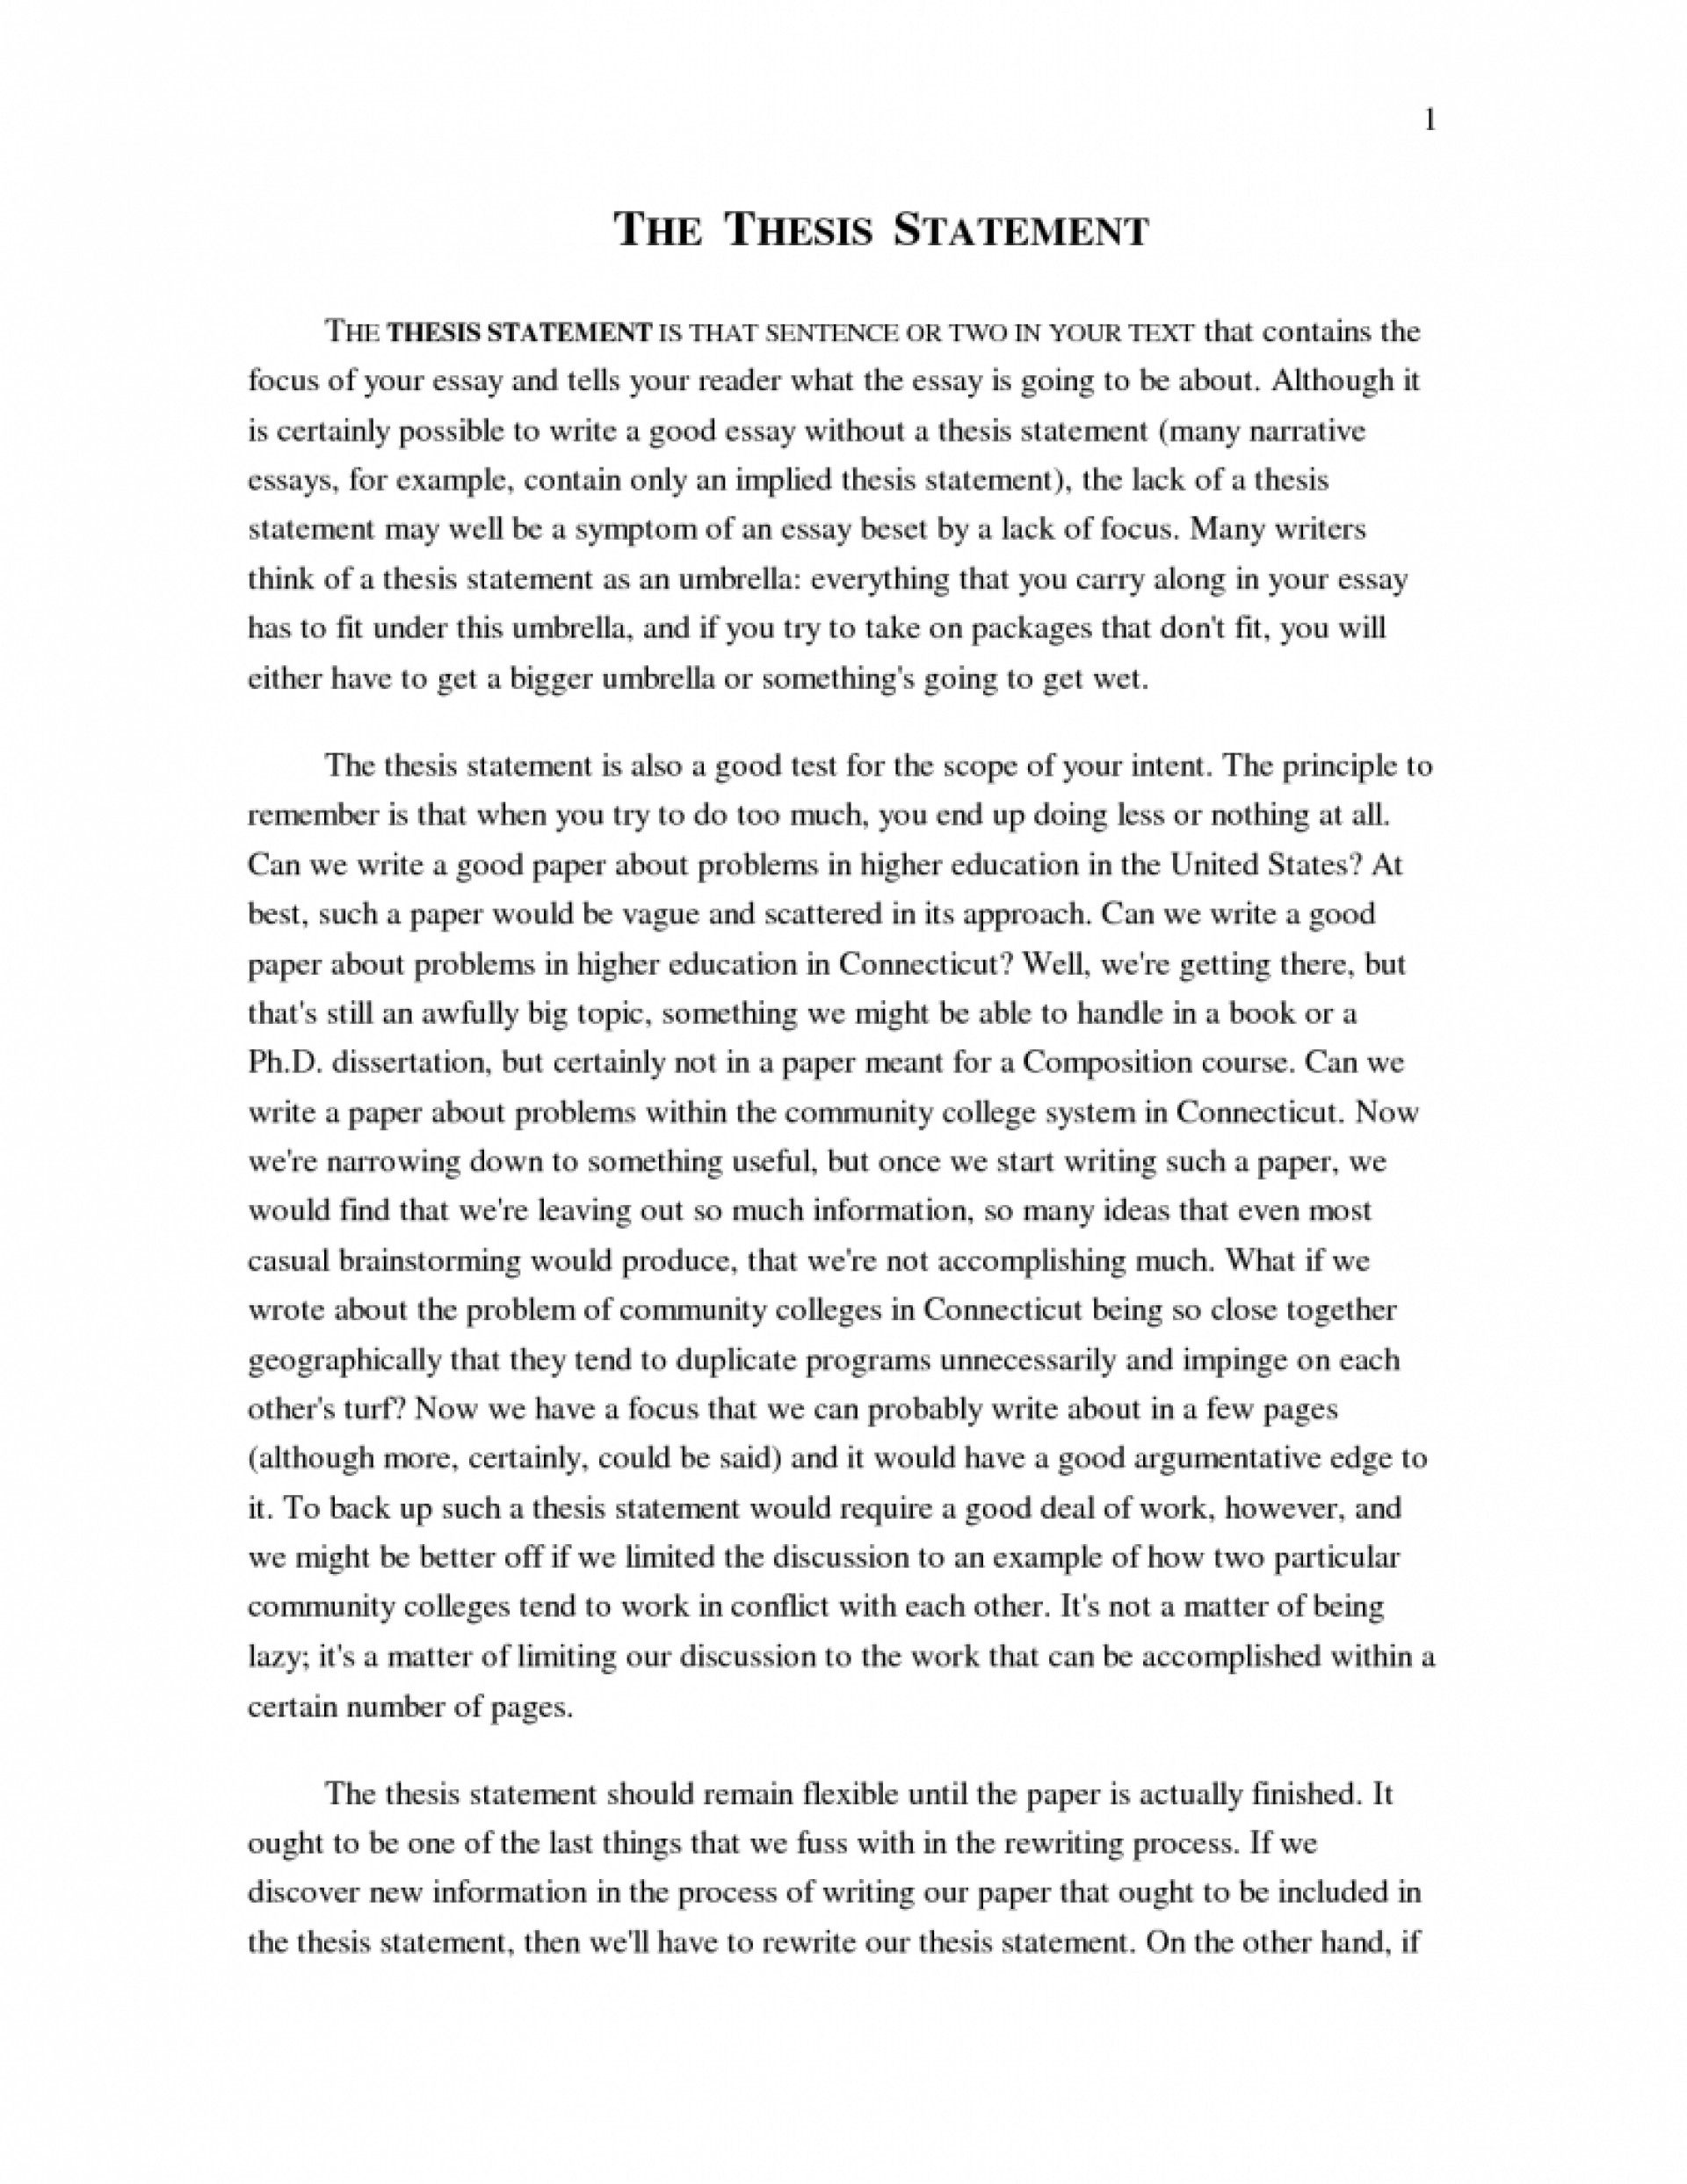 008 Narrative Essays High School Personal Introduction Sample Format Literacy How To Start College Good Reflective Unique Essay Examples Pdf 1920